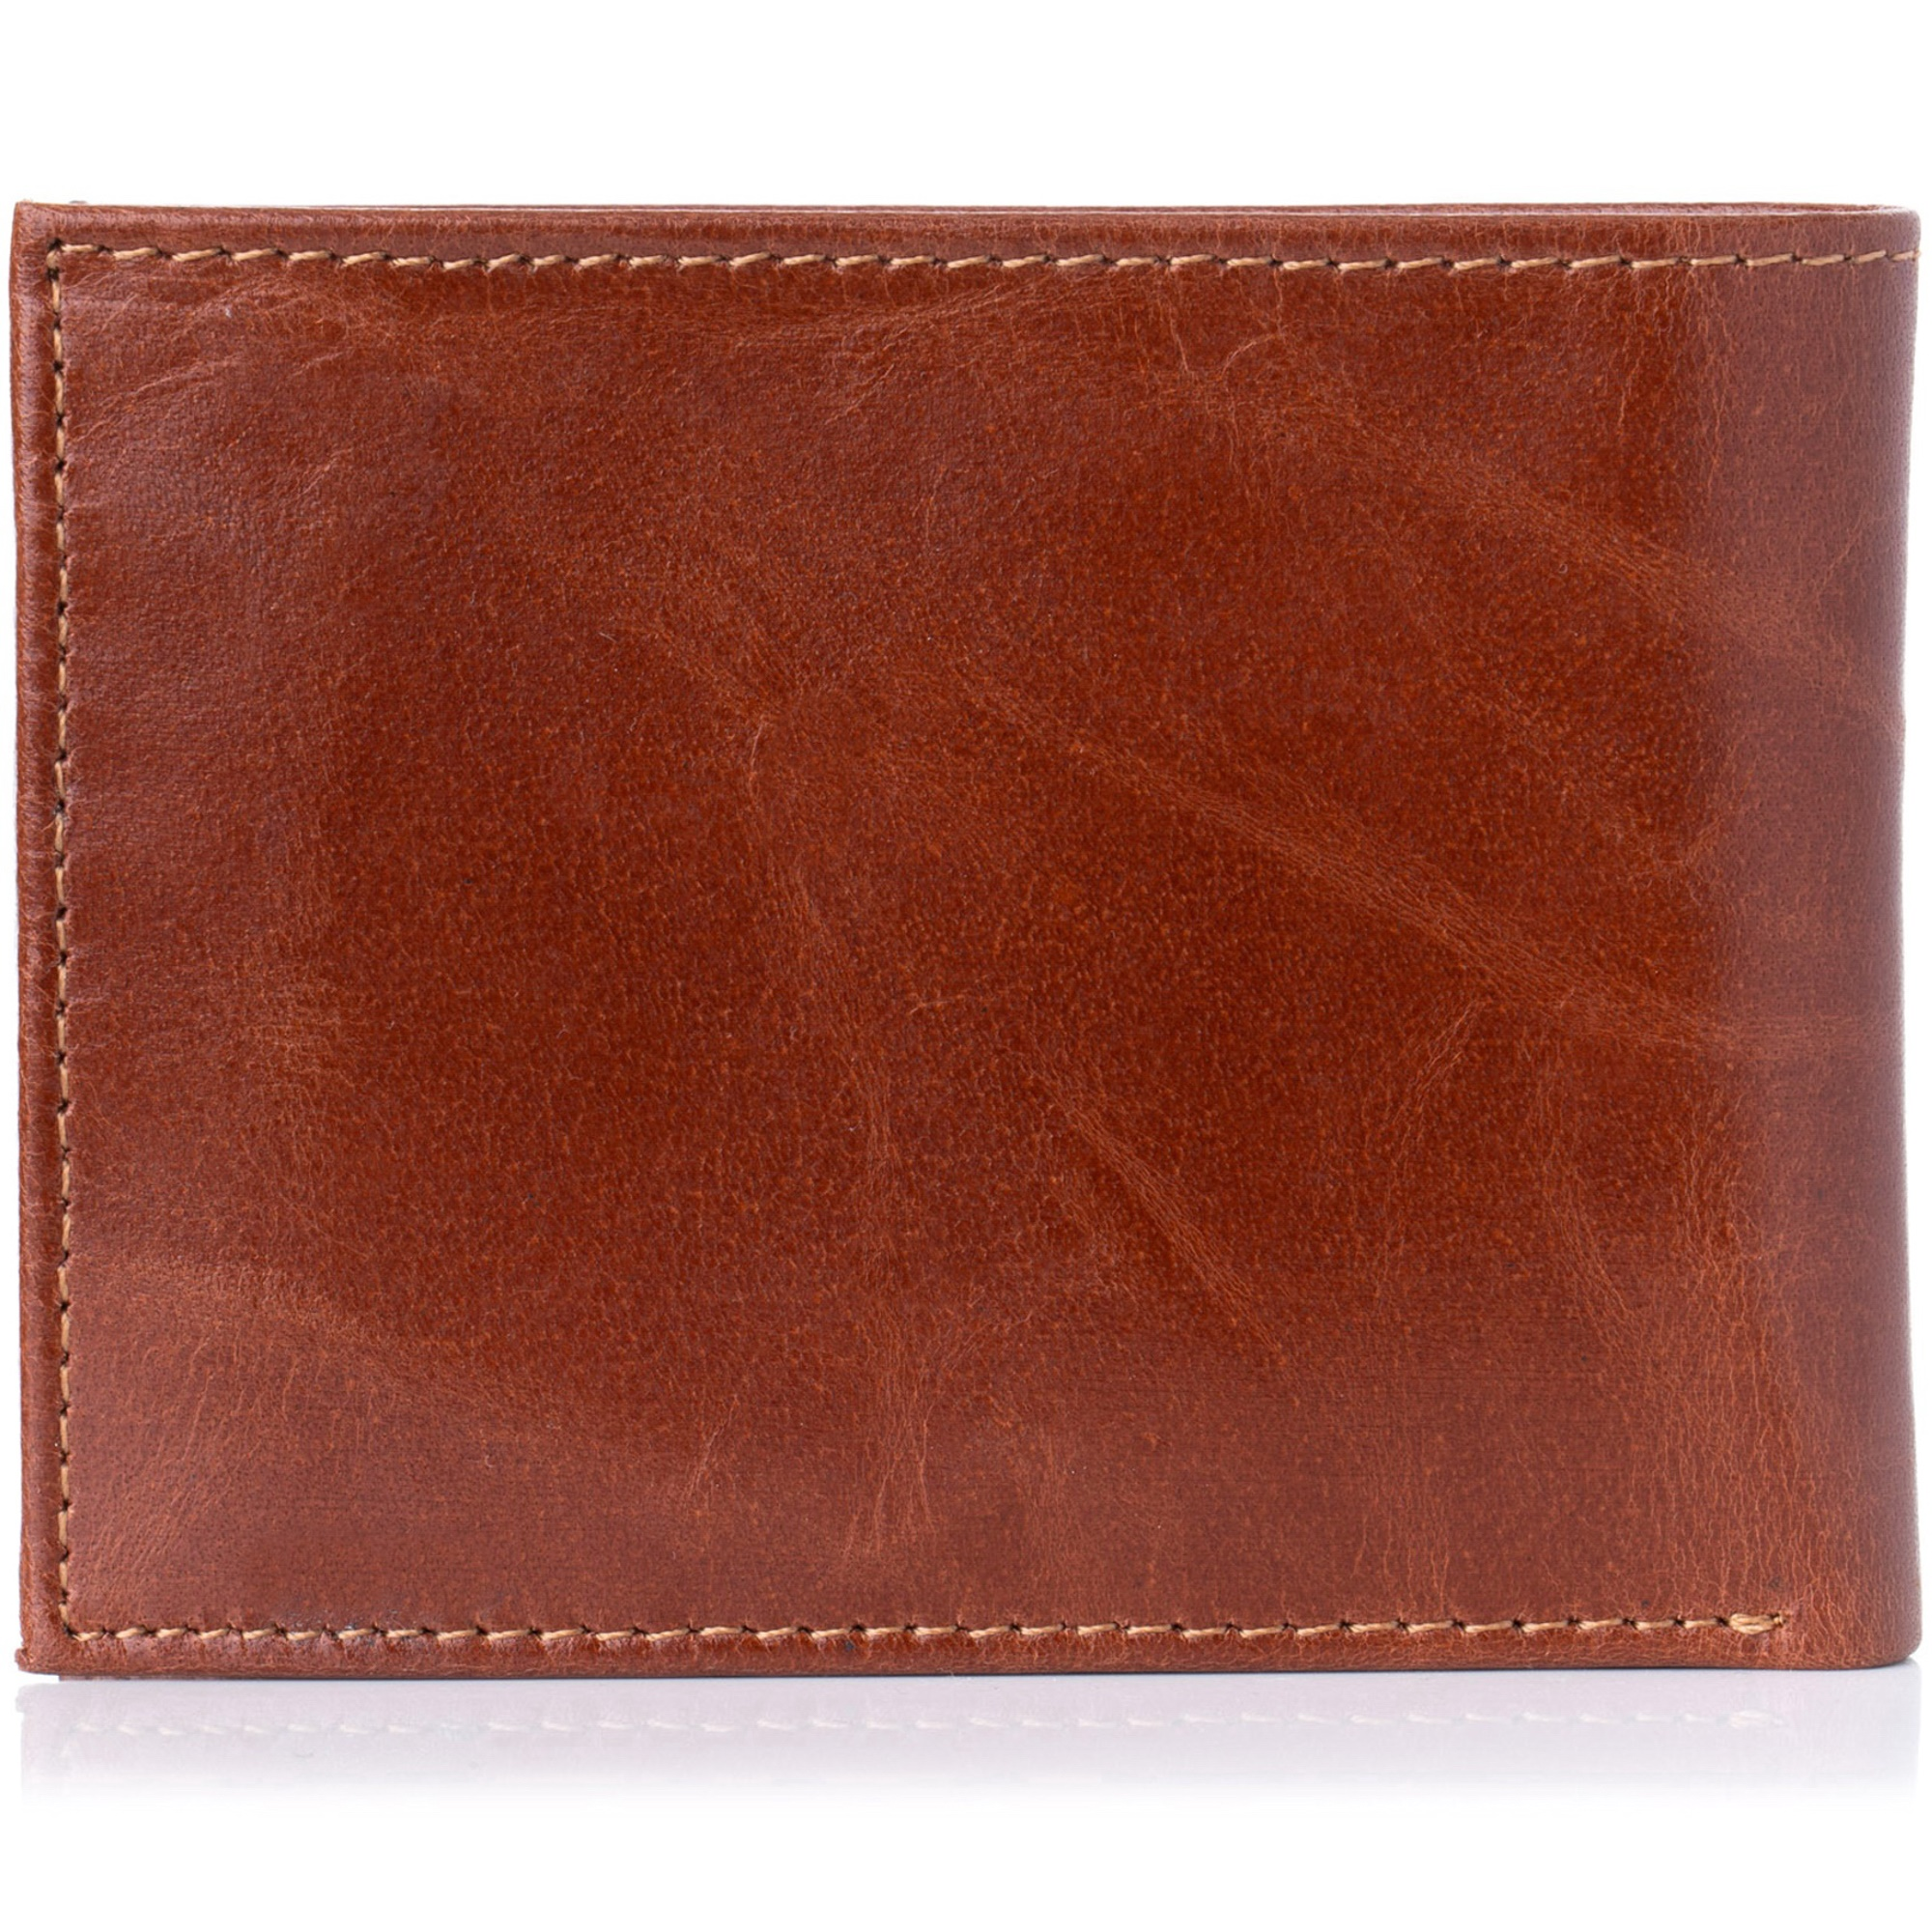 Alpine-Swiss-Mens-Wallet-Genuine-Leather-Removable-ID-Card-Case-Bifold-Passcase thumbnail 91